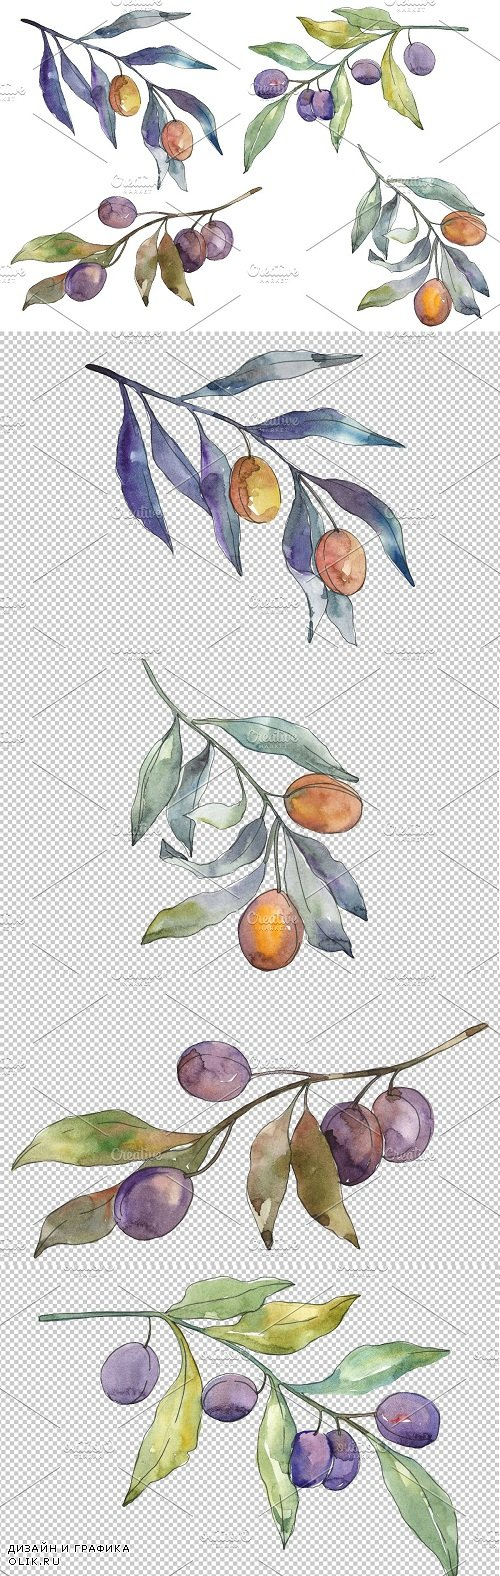 Olives 3 Watercolor png - 3584505